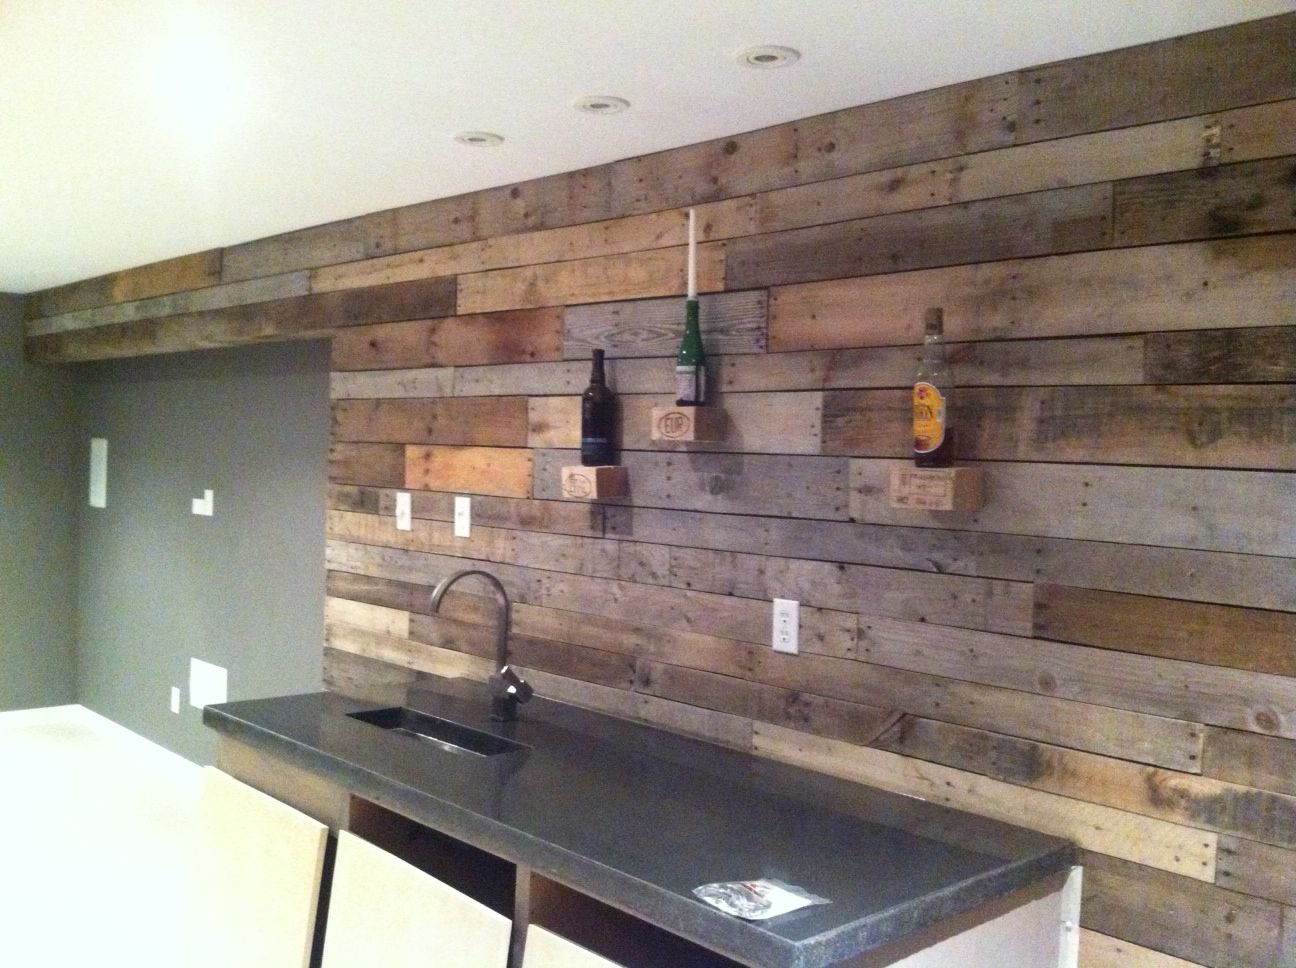 Pallet Wall In Rec Room Man Cave No Stain Applied All Natural Used Some Blocks From Pallets As Small Shelves Over Bar Pallet Wall Rec Room Charcoal Walls